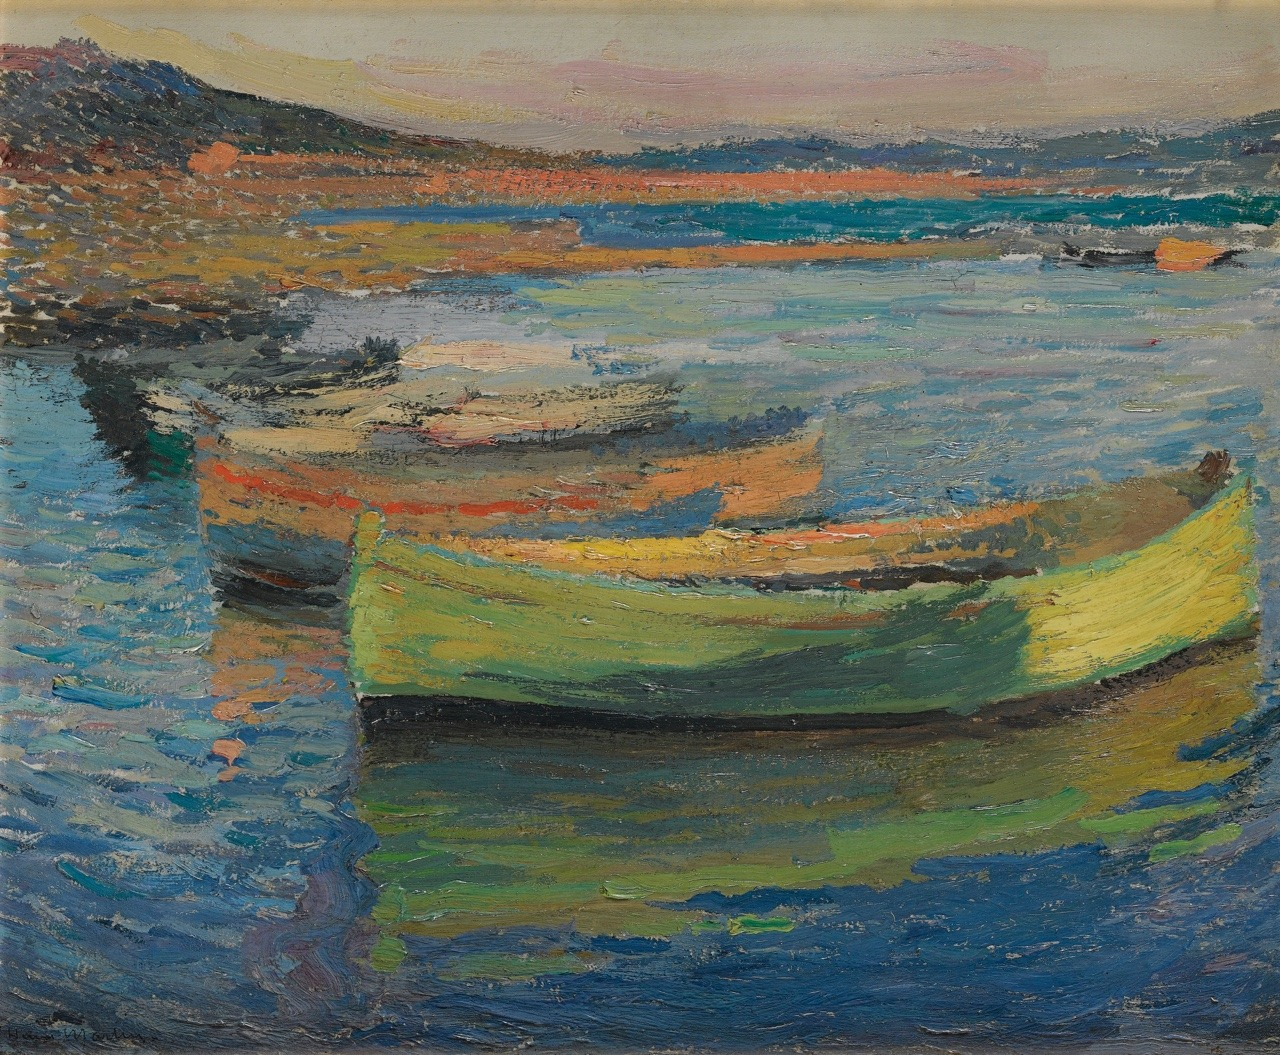 """terminusantequem:"""" Henri Martin (French, 1860-1943), BARQUES AUX ENVIRONS DE COLLIOURE, c.1910. Oil on panel, 37.2 by 46cm (14 5/8 by 18 1/8 in.)"""""""